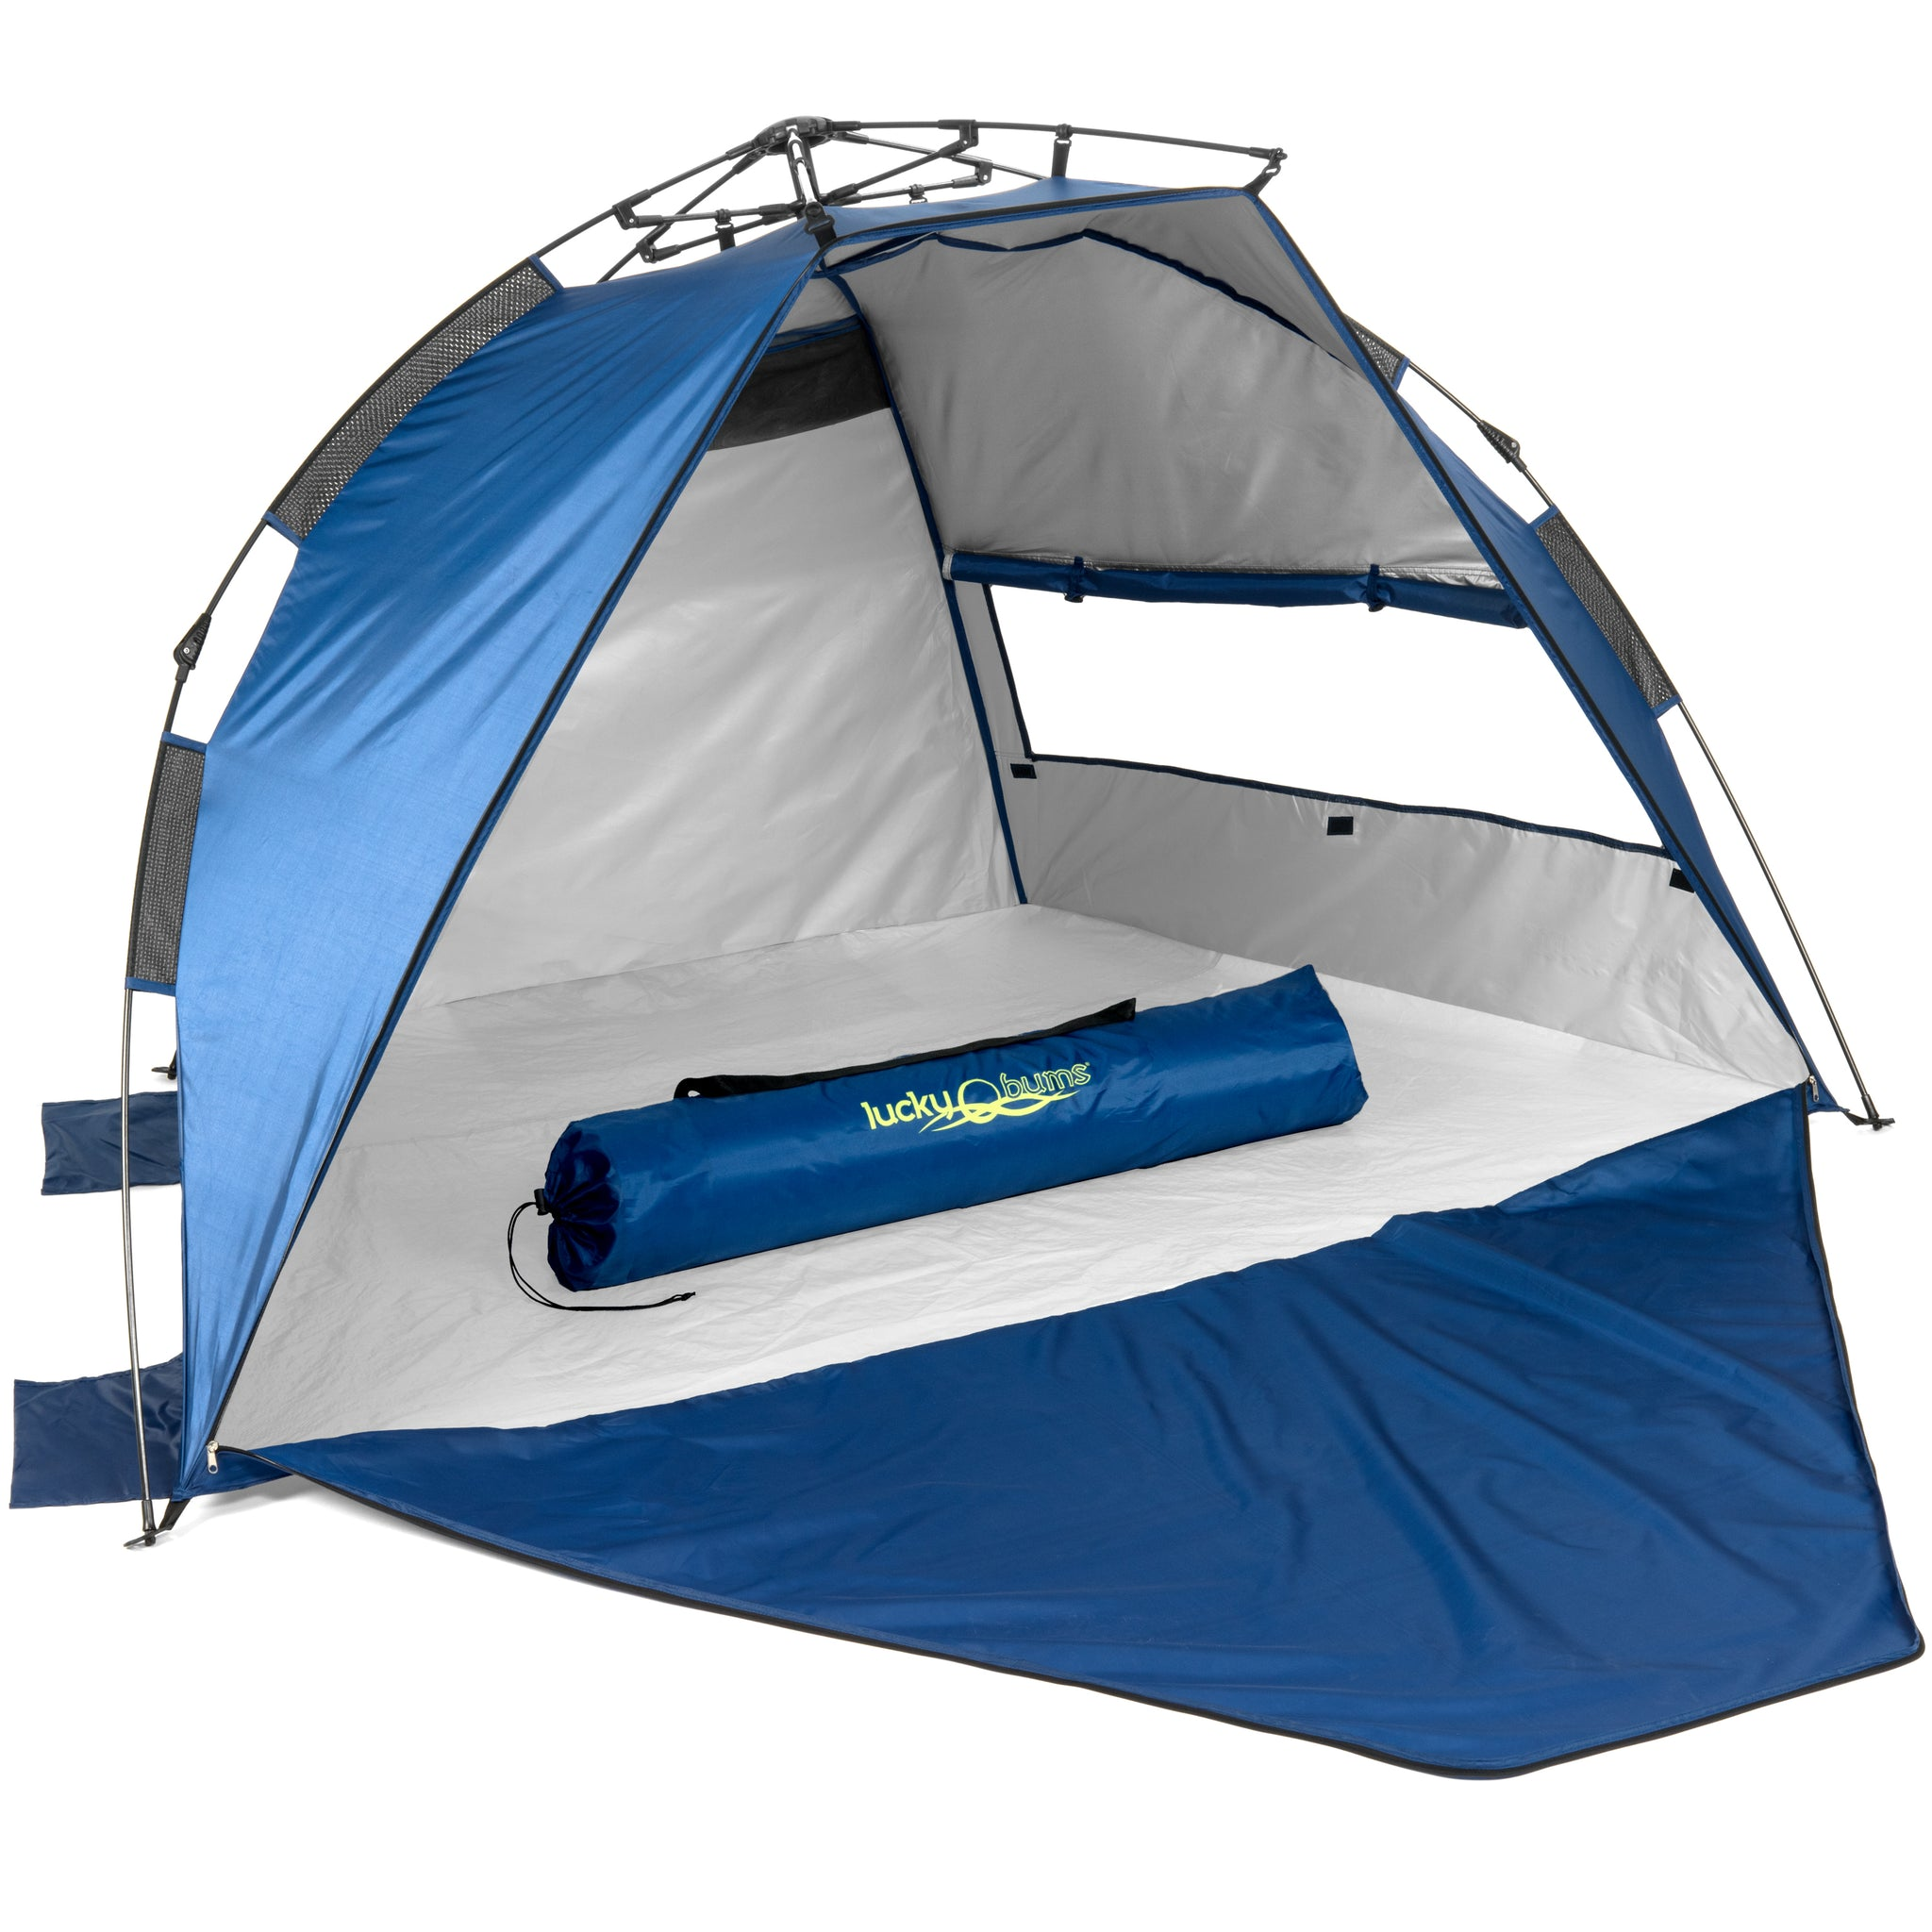 sc 1 st  Lucky Bums : easy pop up beach tent - memphite.com